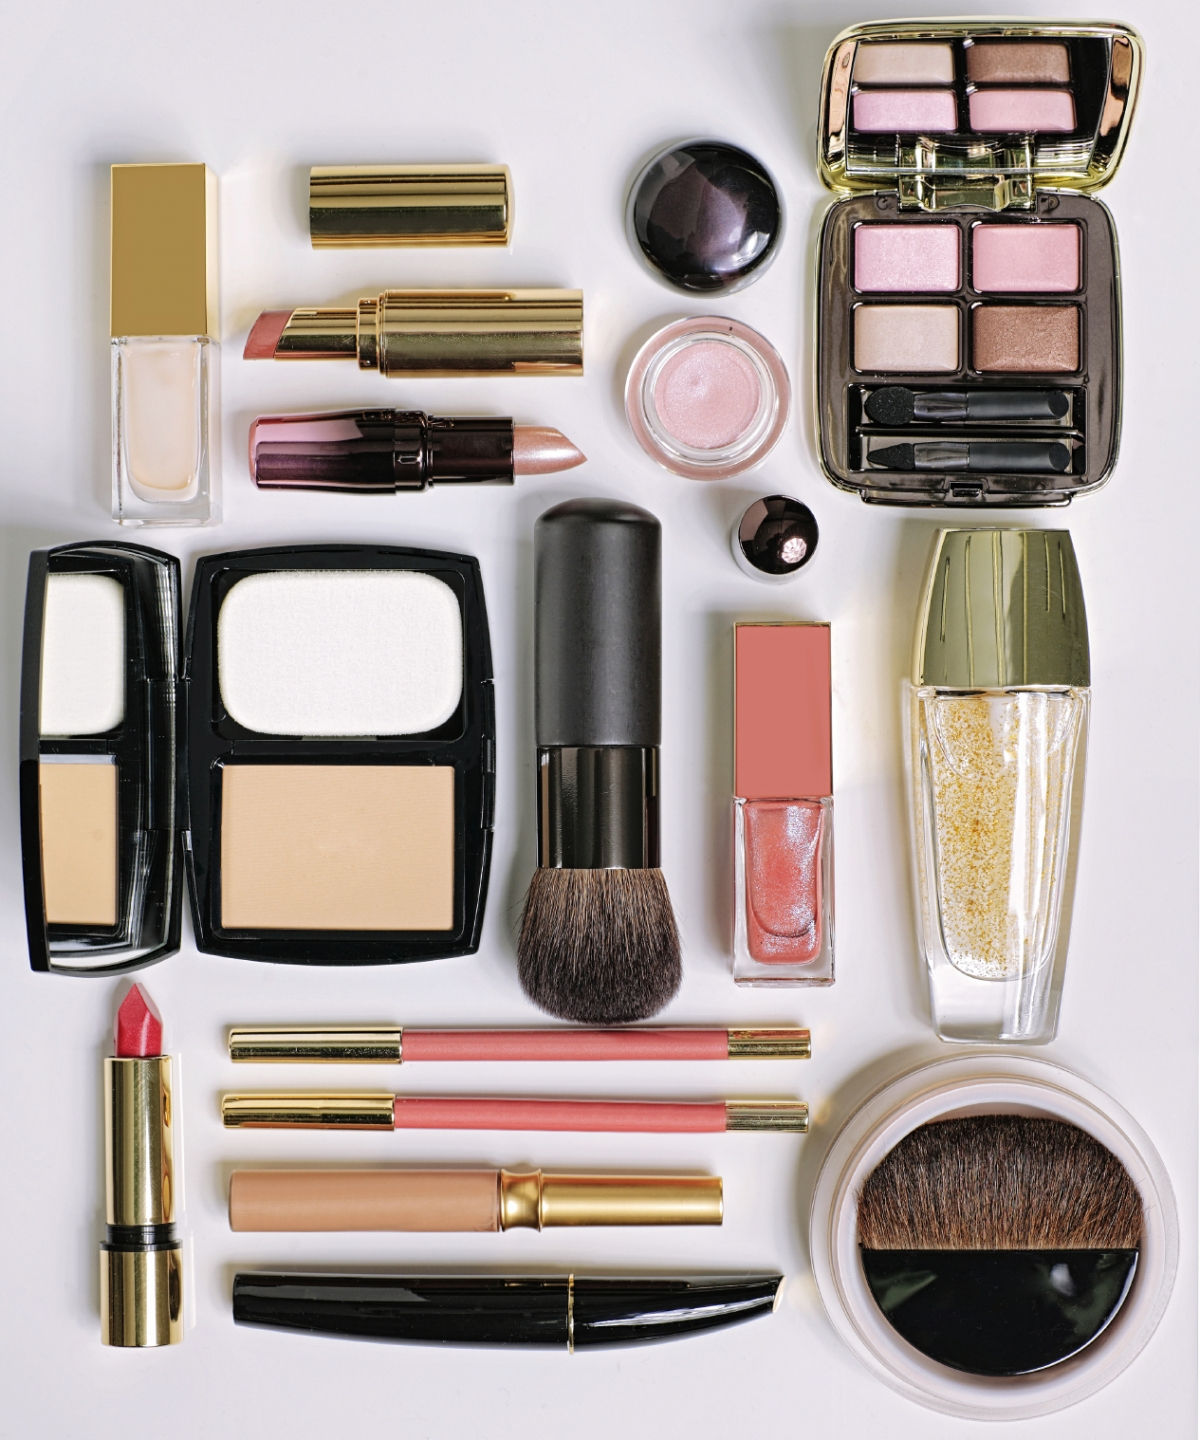 What's in your make up?